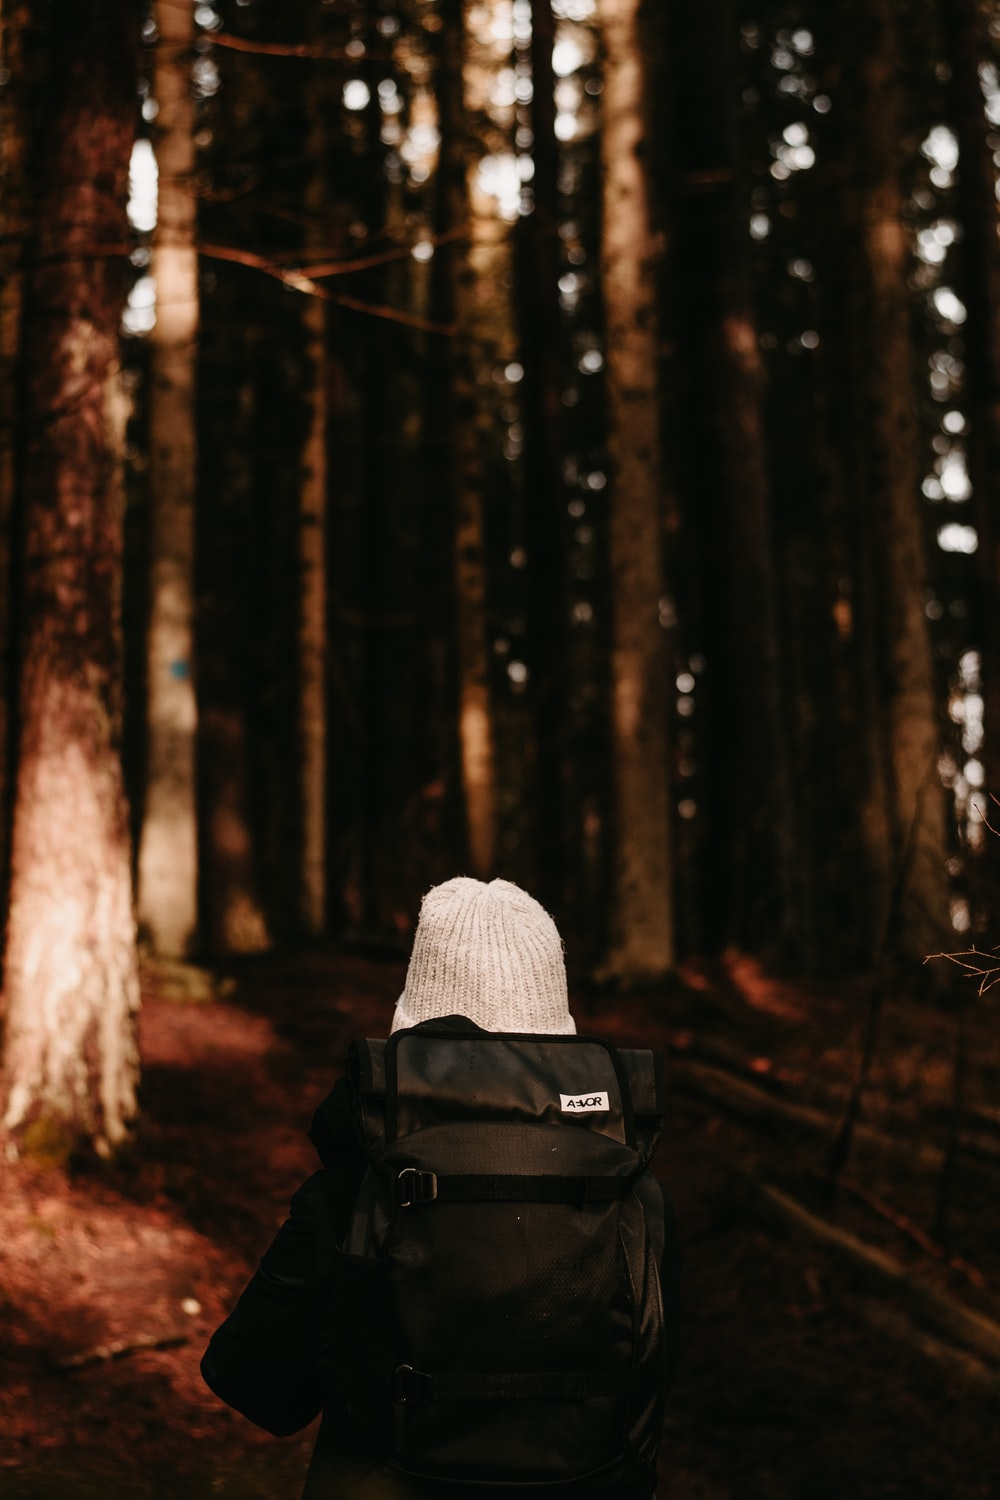 person in black jacket wearing white knit cap in forest during daytime